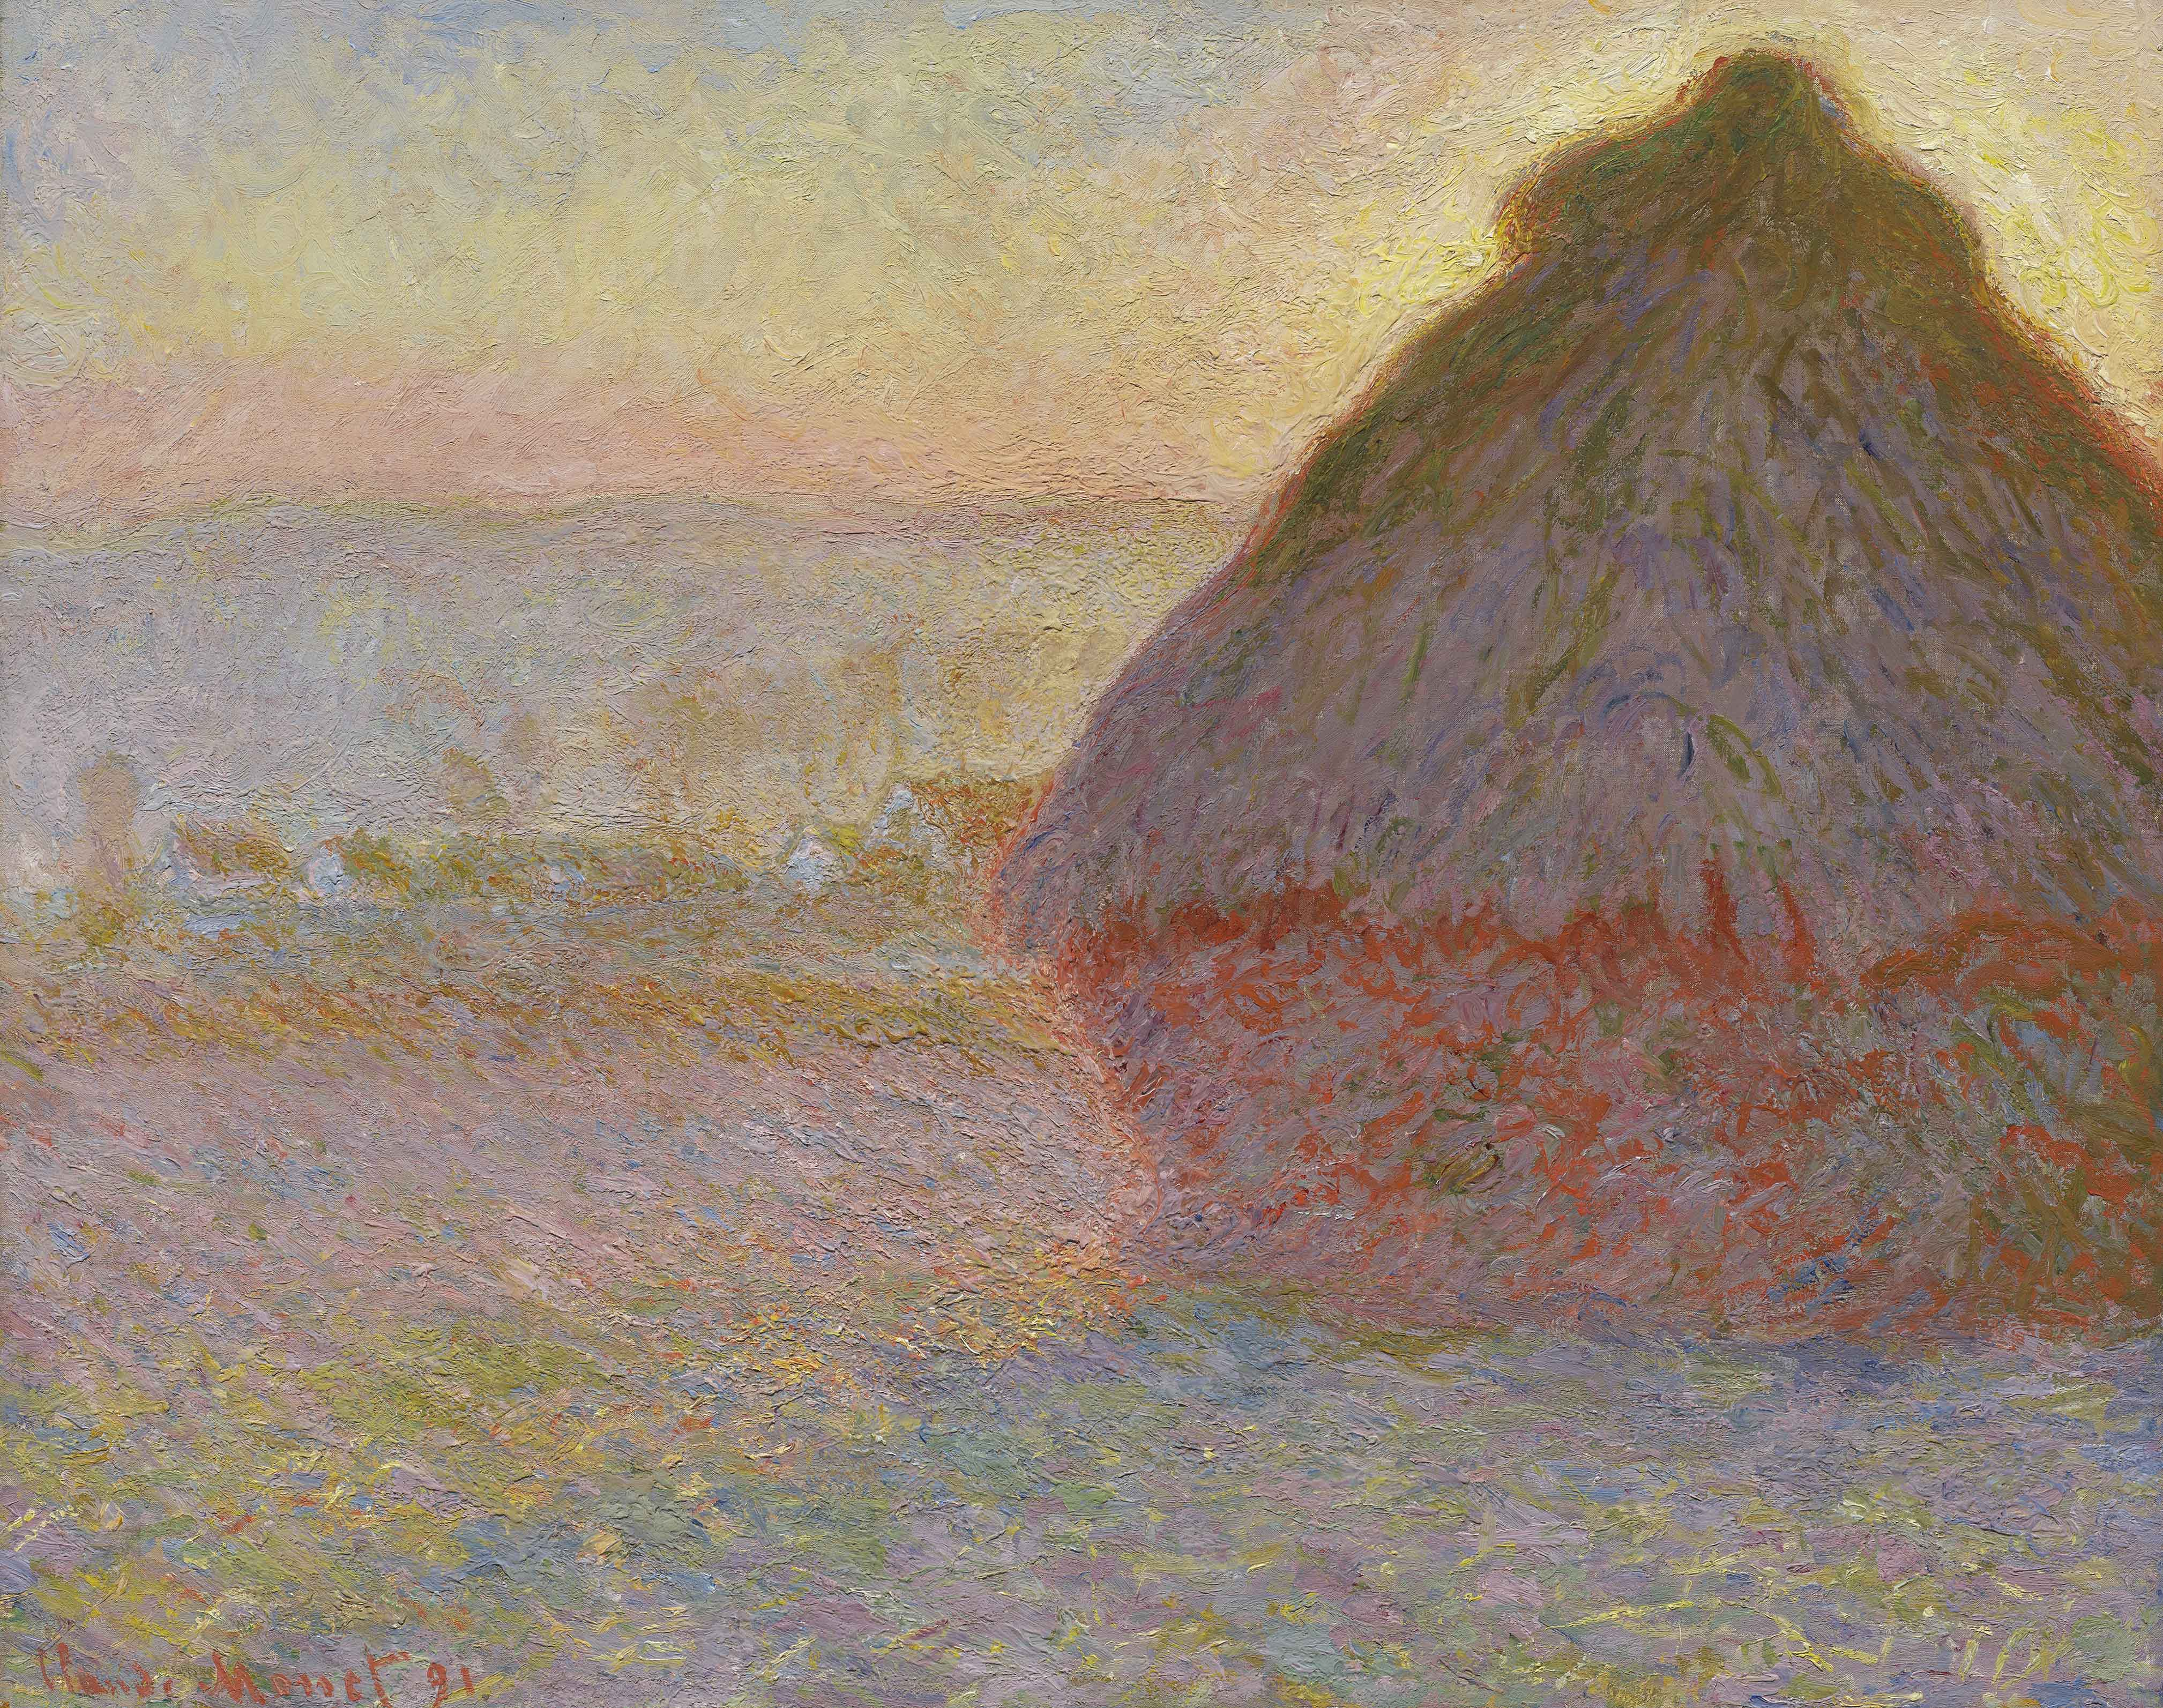 Claude Monet, Grainstack (Sunset), 1891, Oil on canvas, 28 7/8 x 36 1/2 inches,